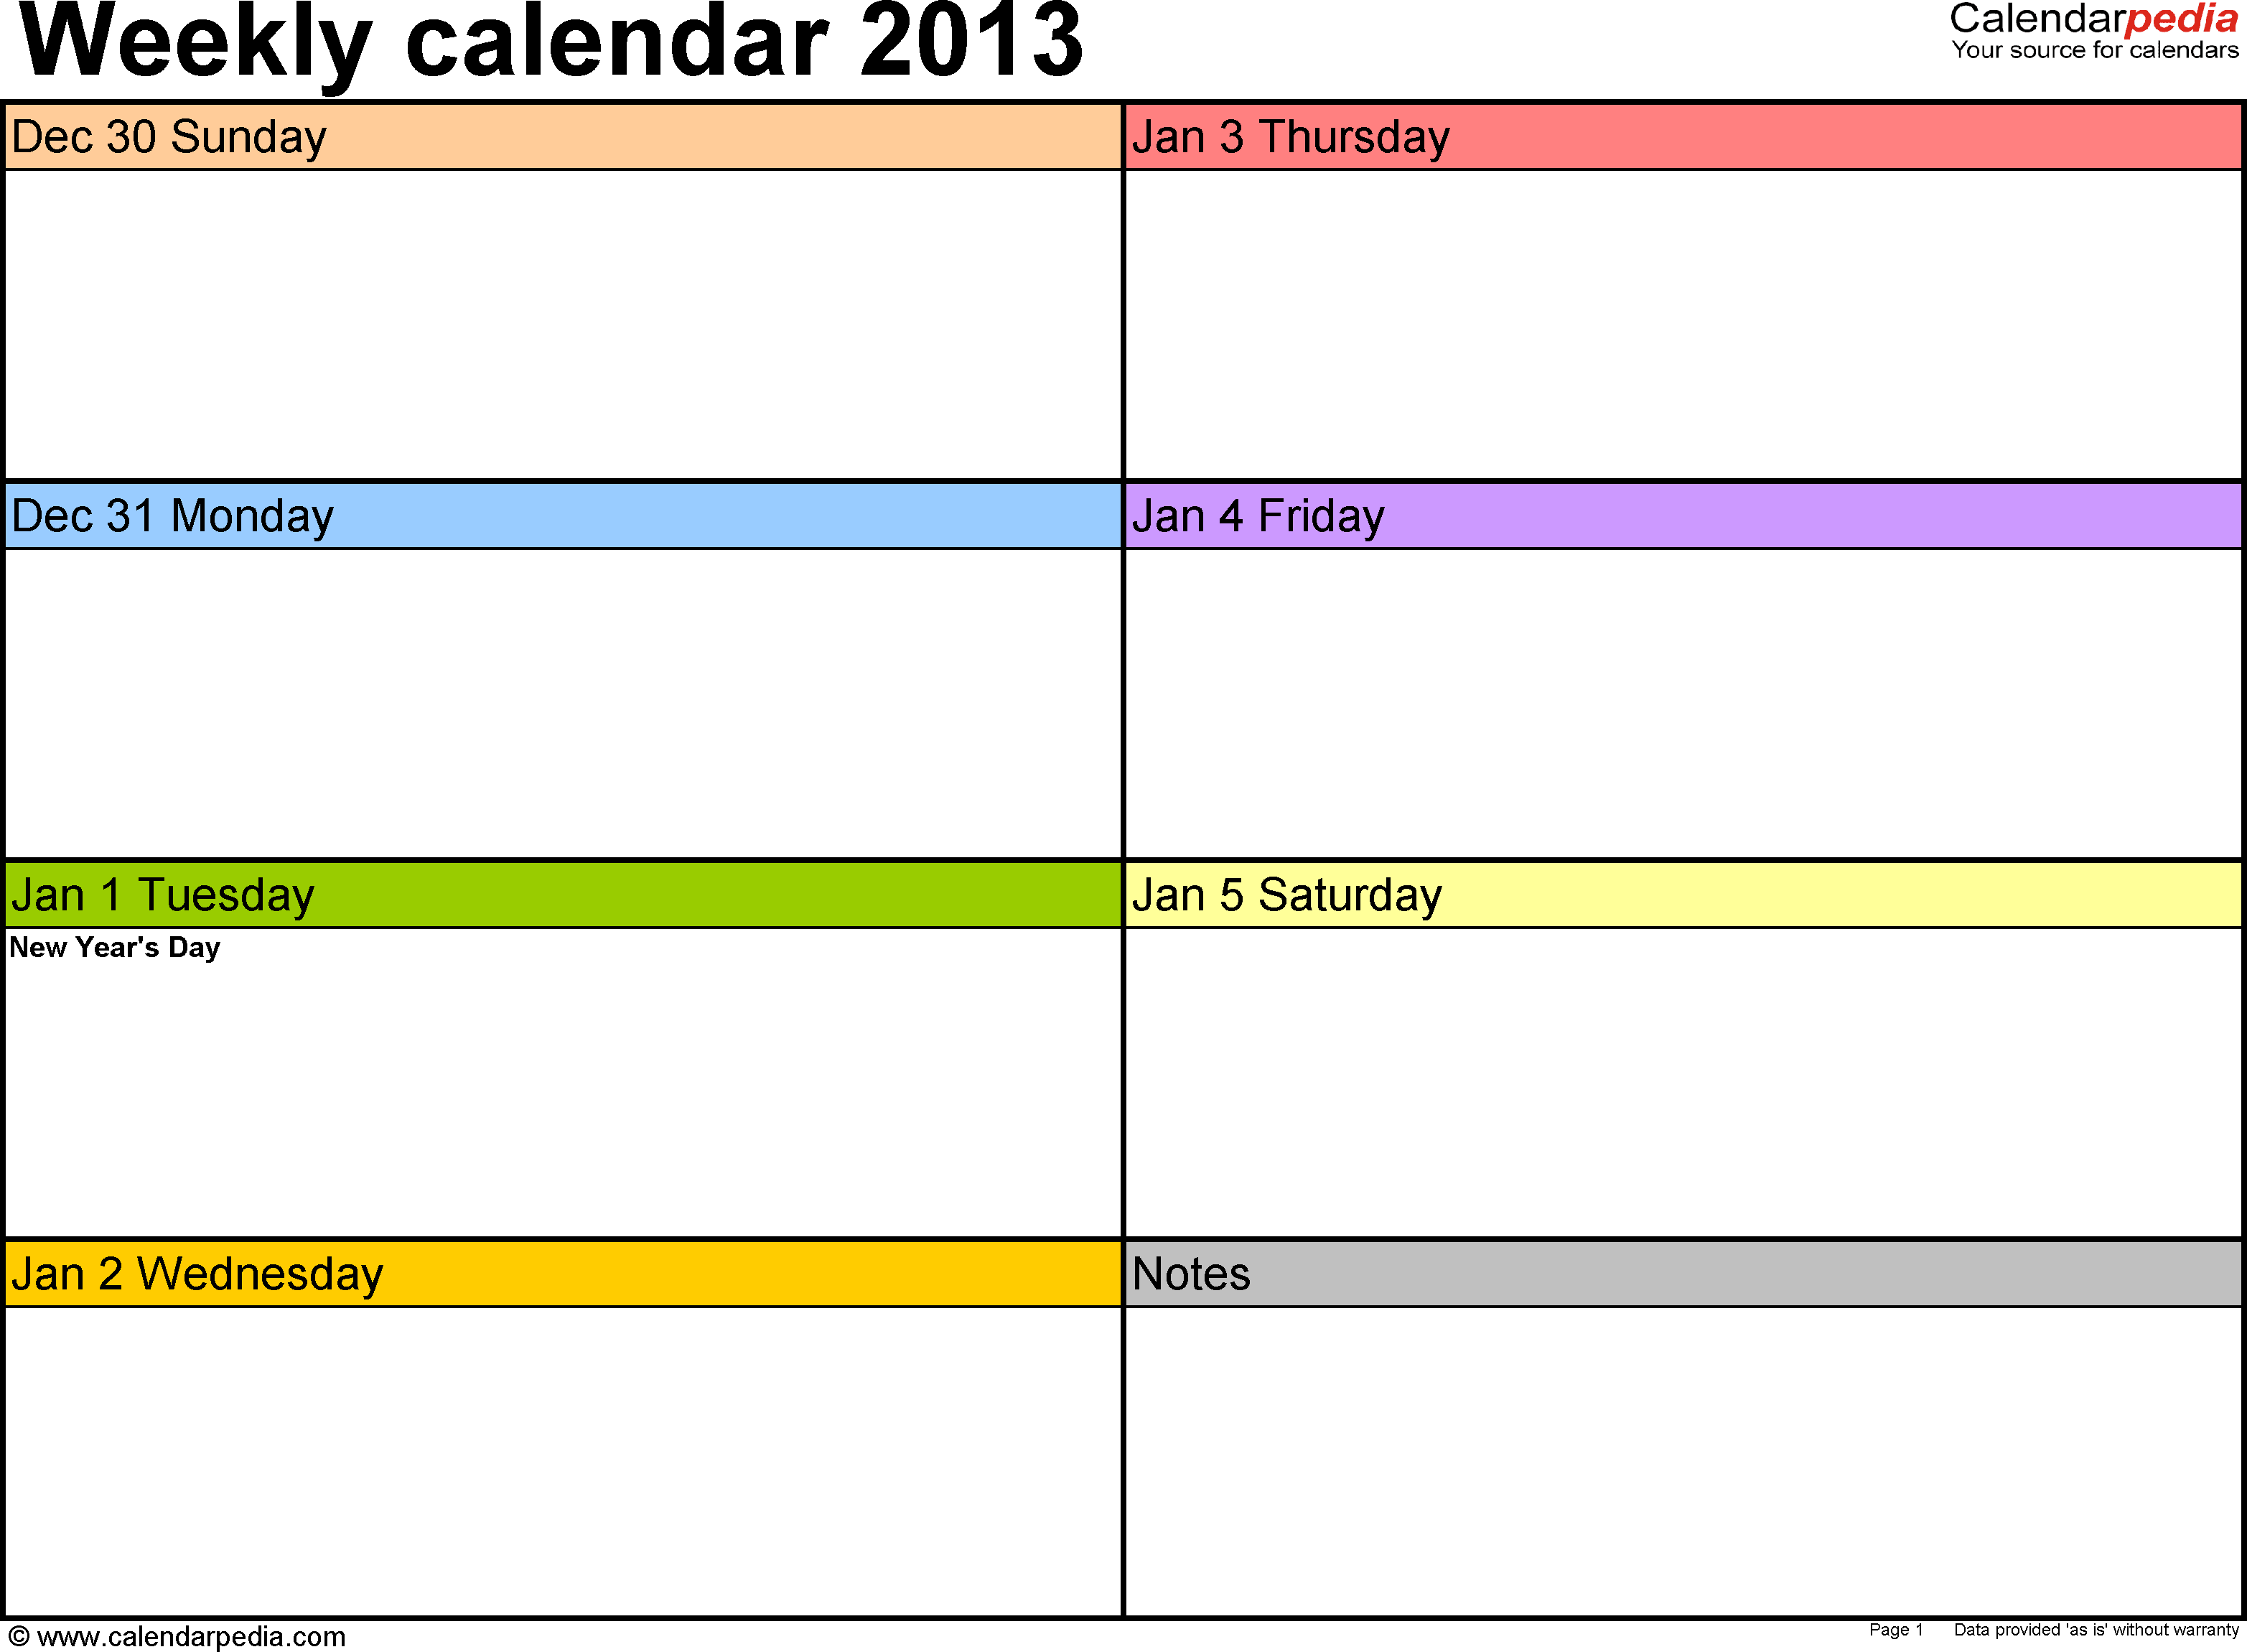 Weekly Calendar 2013 Template For Word Version 2 Landscape 53 Pages In